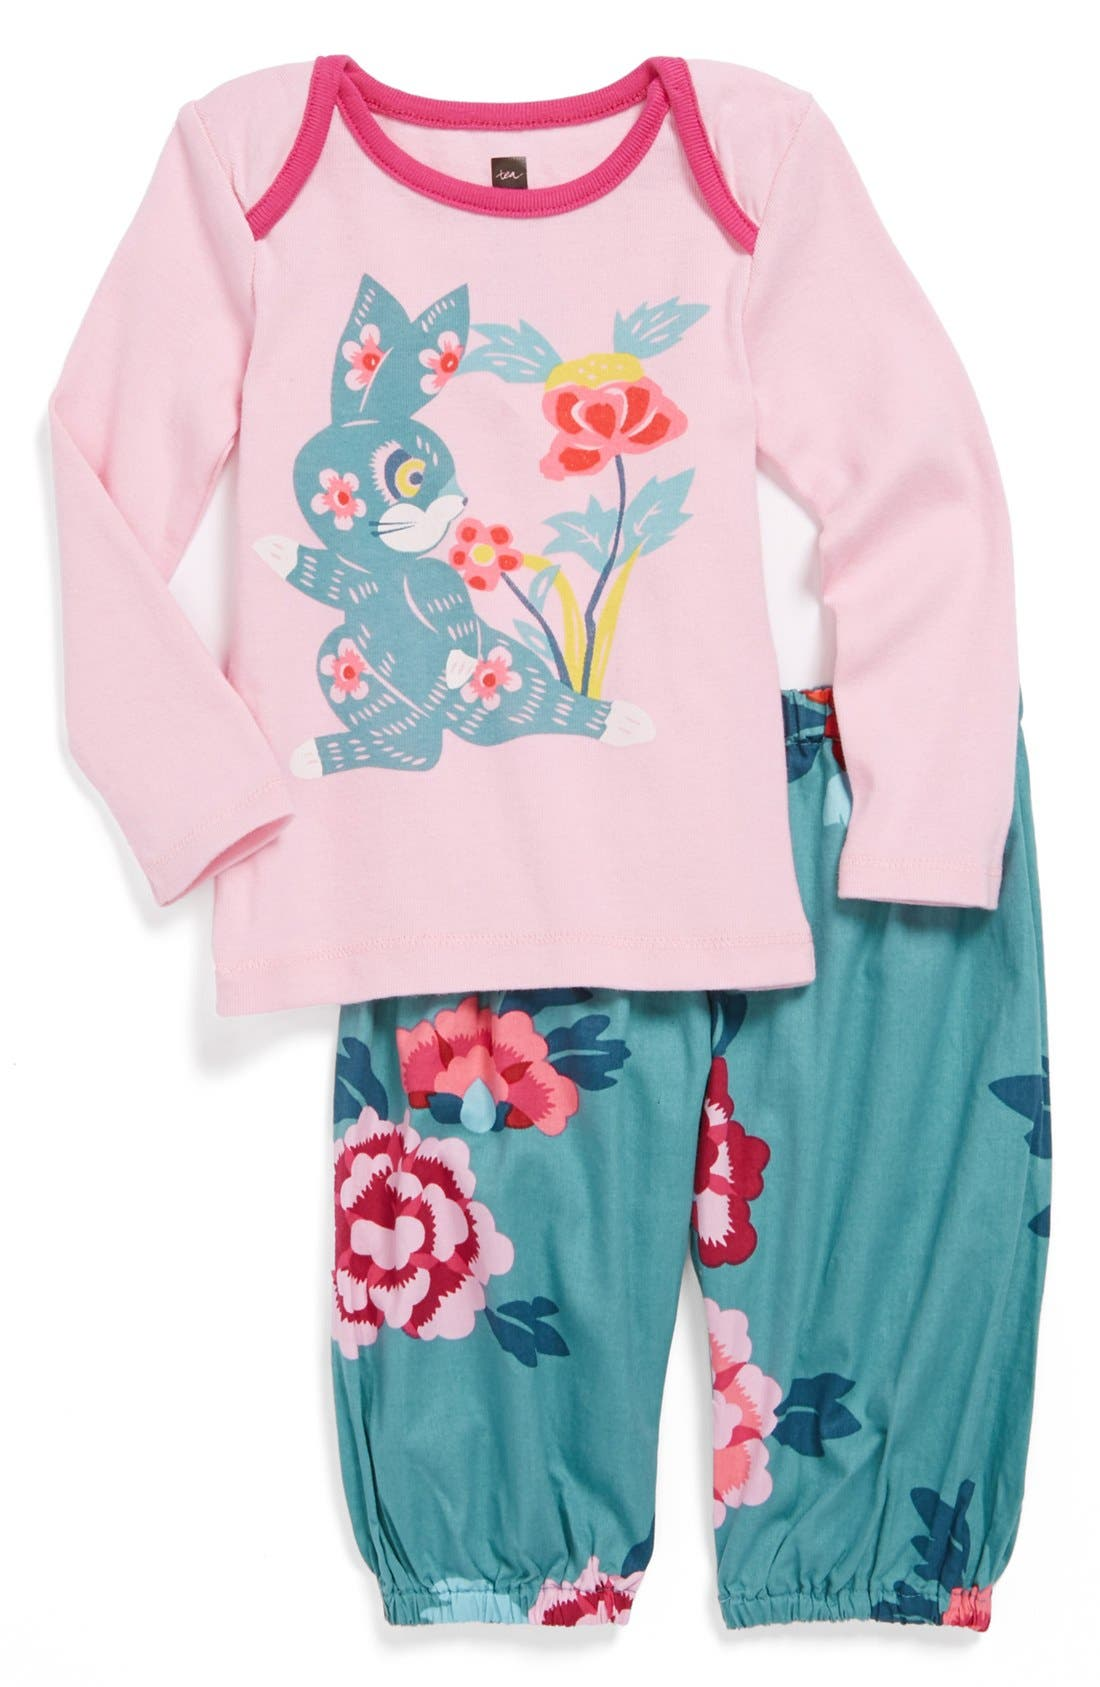 Alternate Image 1 Selected - Tea Collection 'Eastern Pop' Top & Pants (Baby Girls)